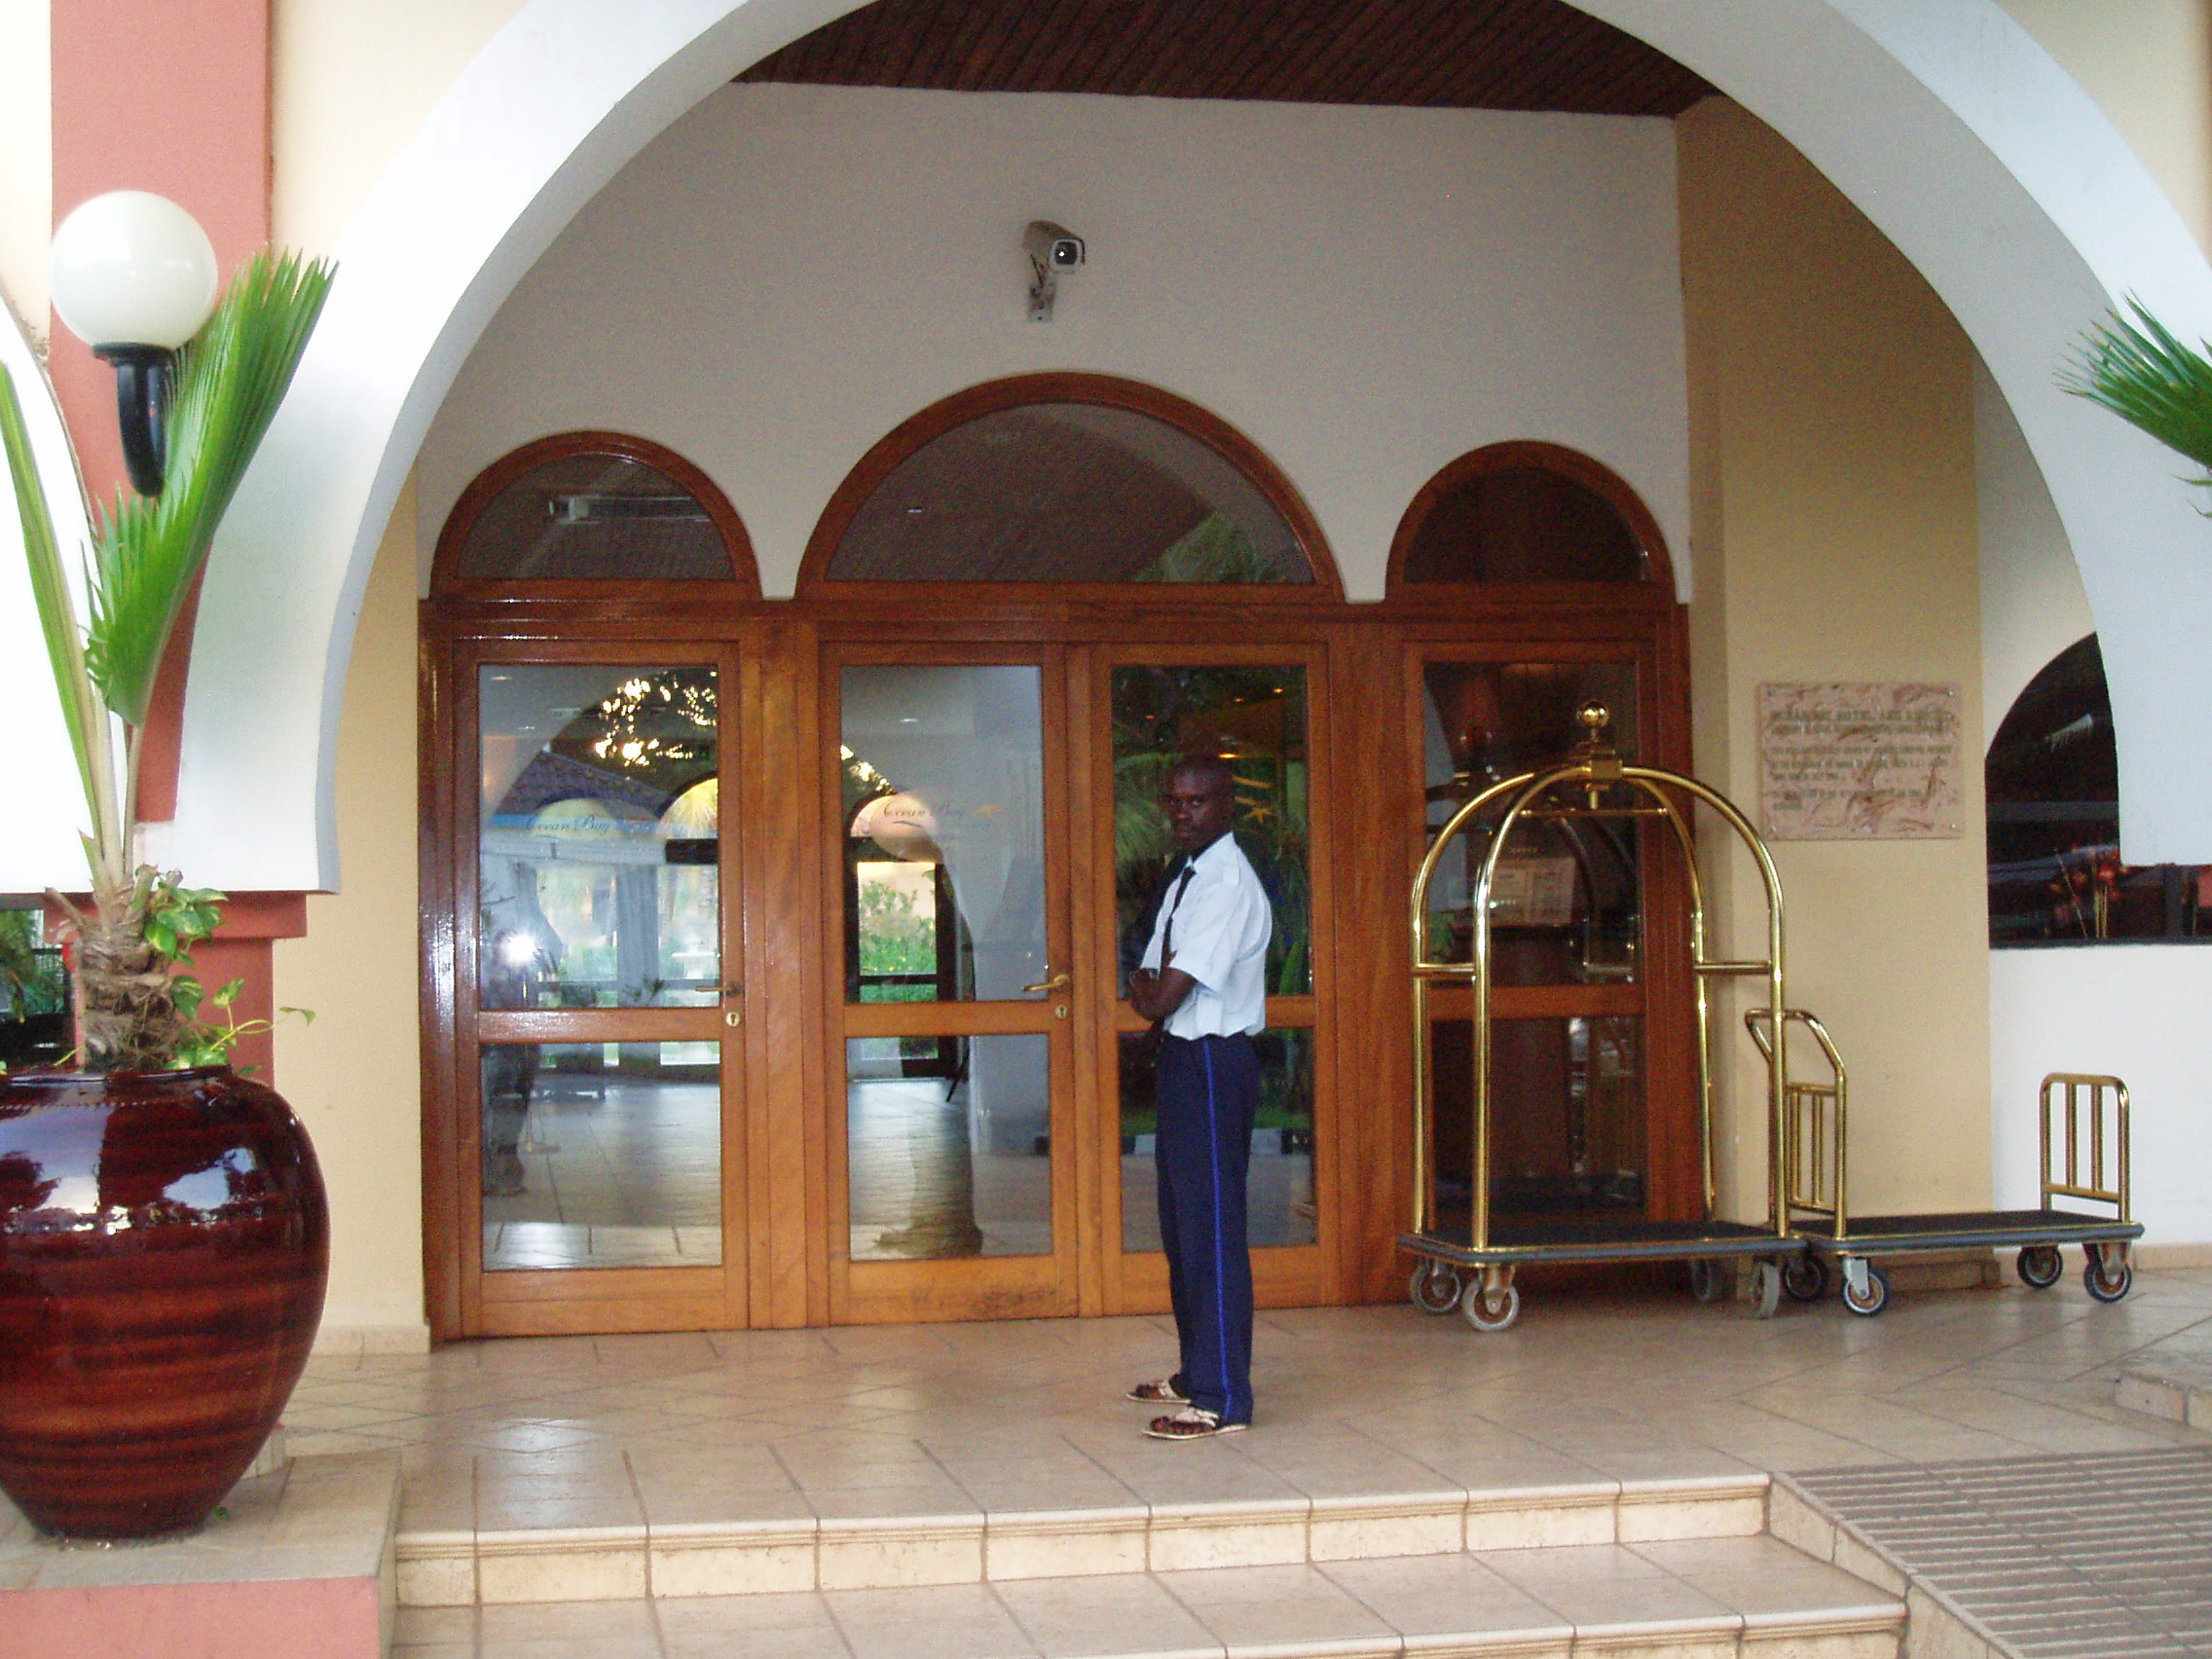 Security guards at the Ocean Bay hotel in Bakau, Gambia, have signed up to a code of conduct prohibiting child sex workers to work in the hotel.